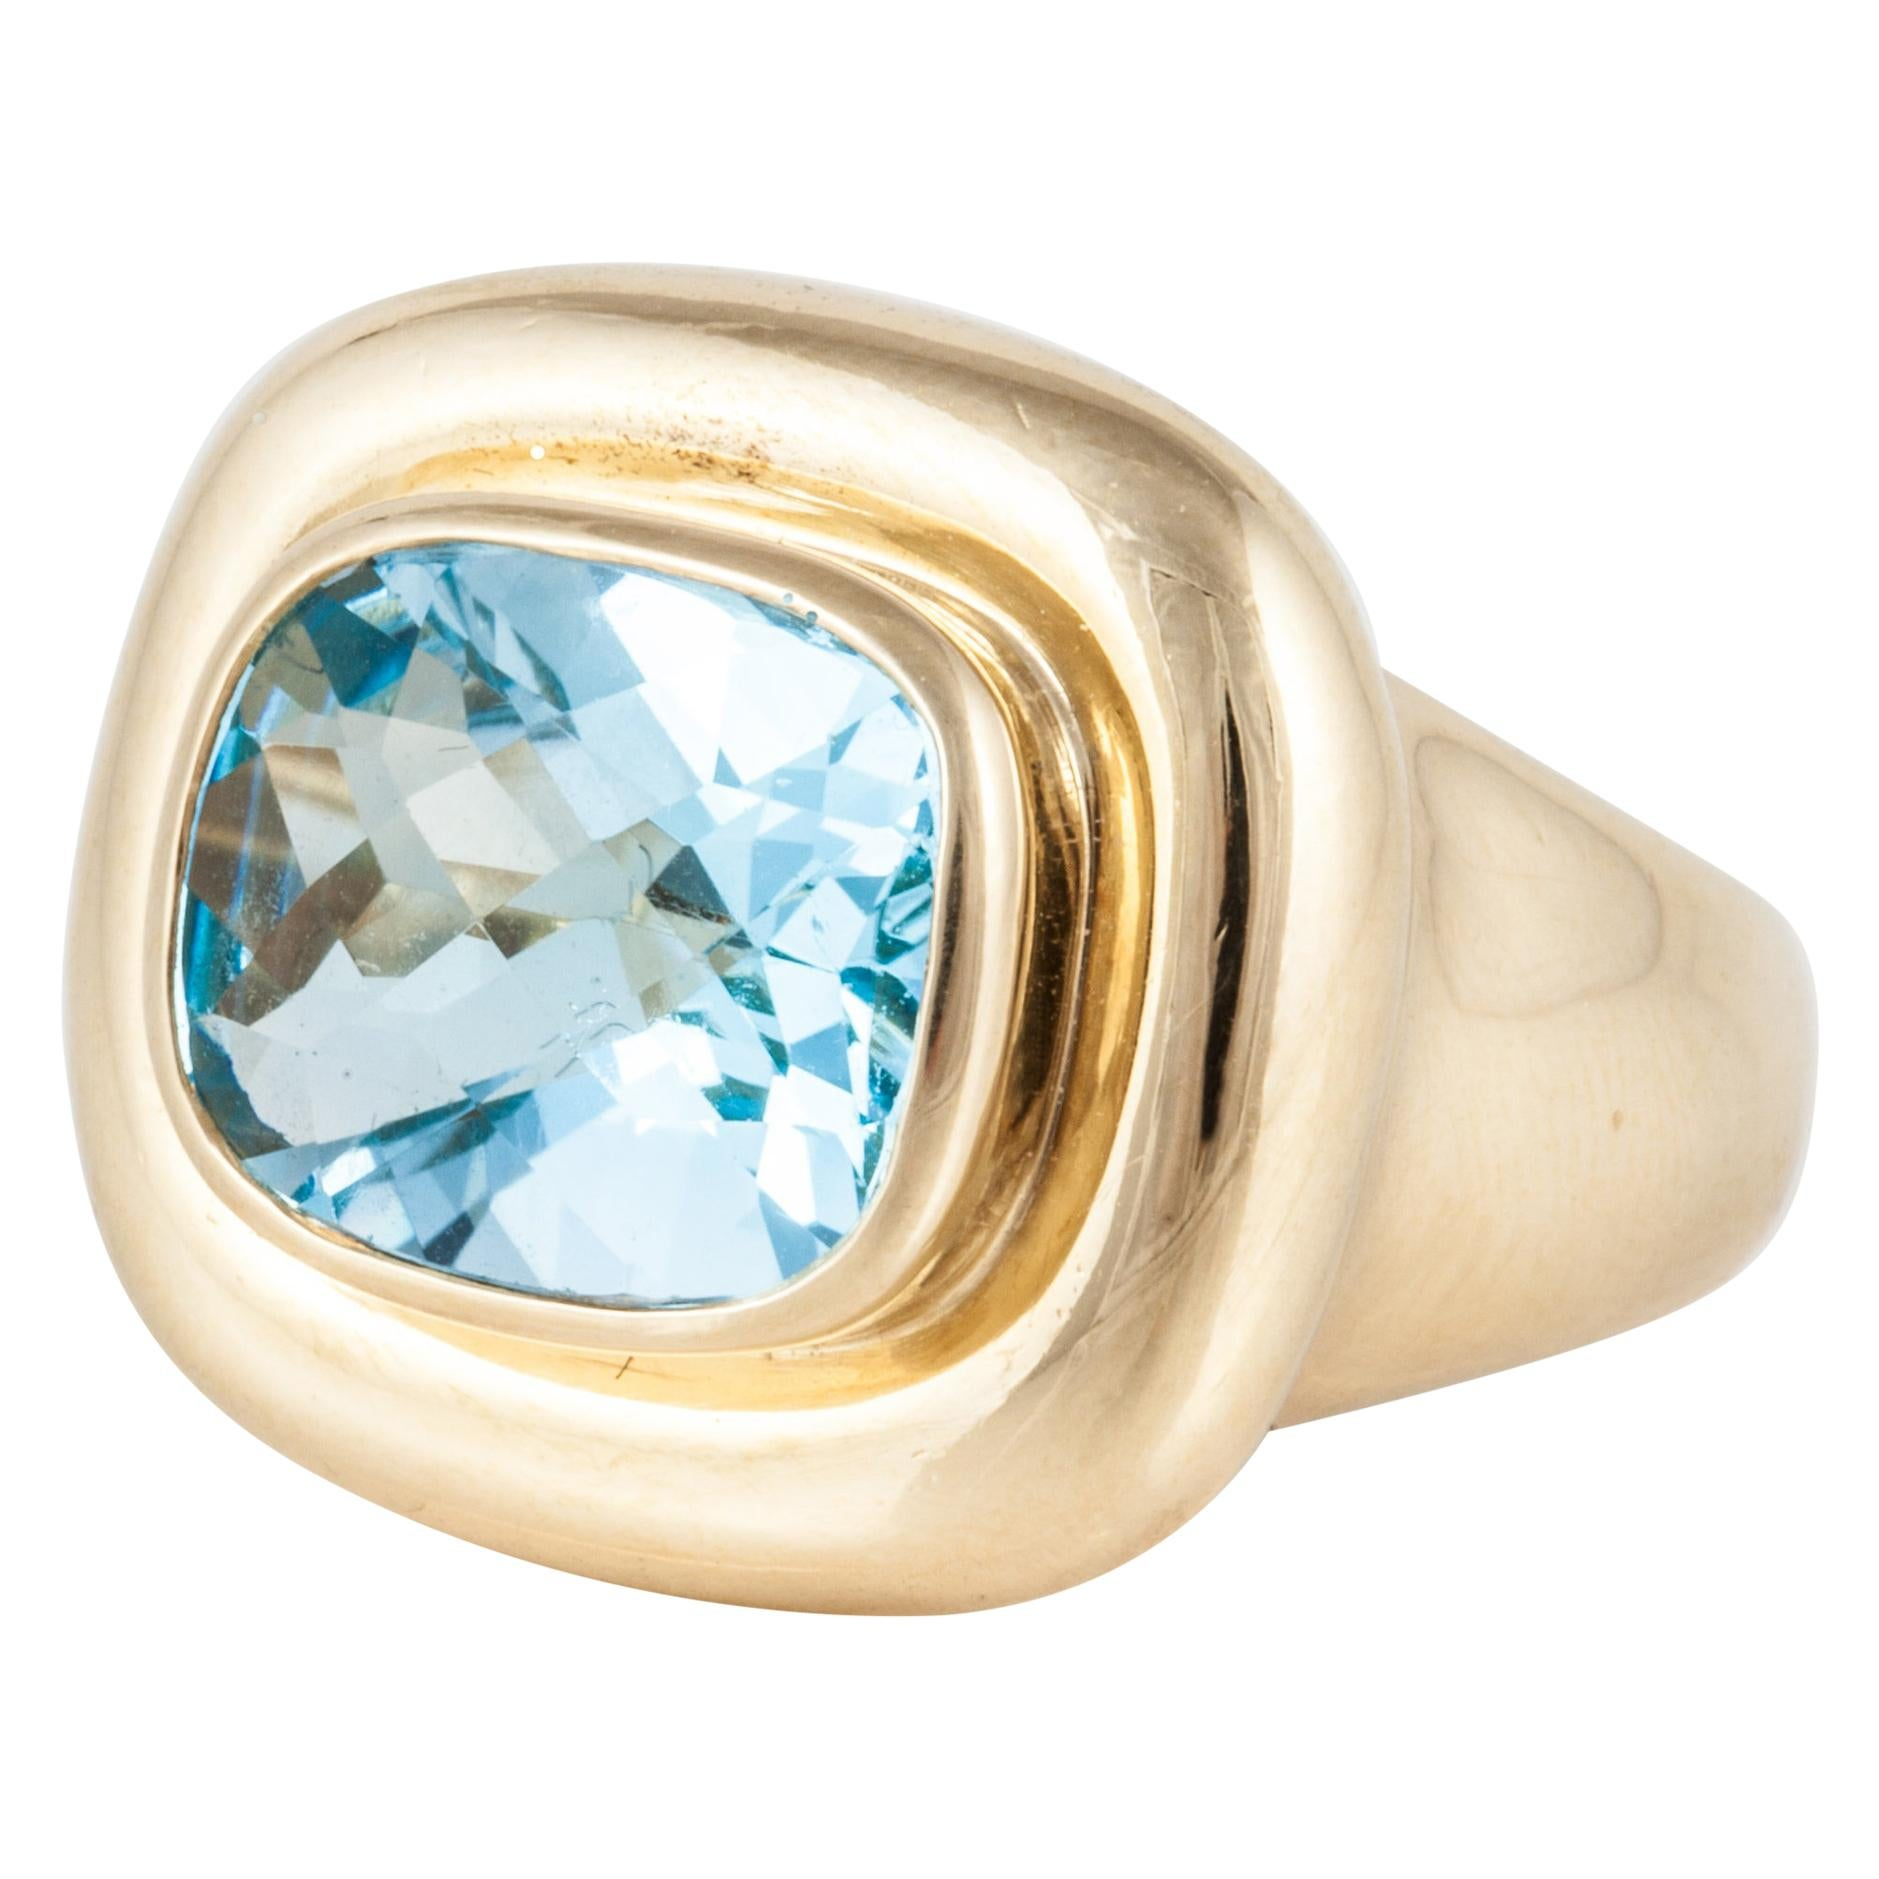 Tiffany & Co. by Paloma Picasso 18K Yellow Gold Blue Topaz Ring